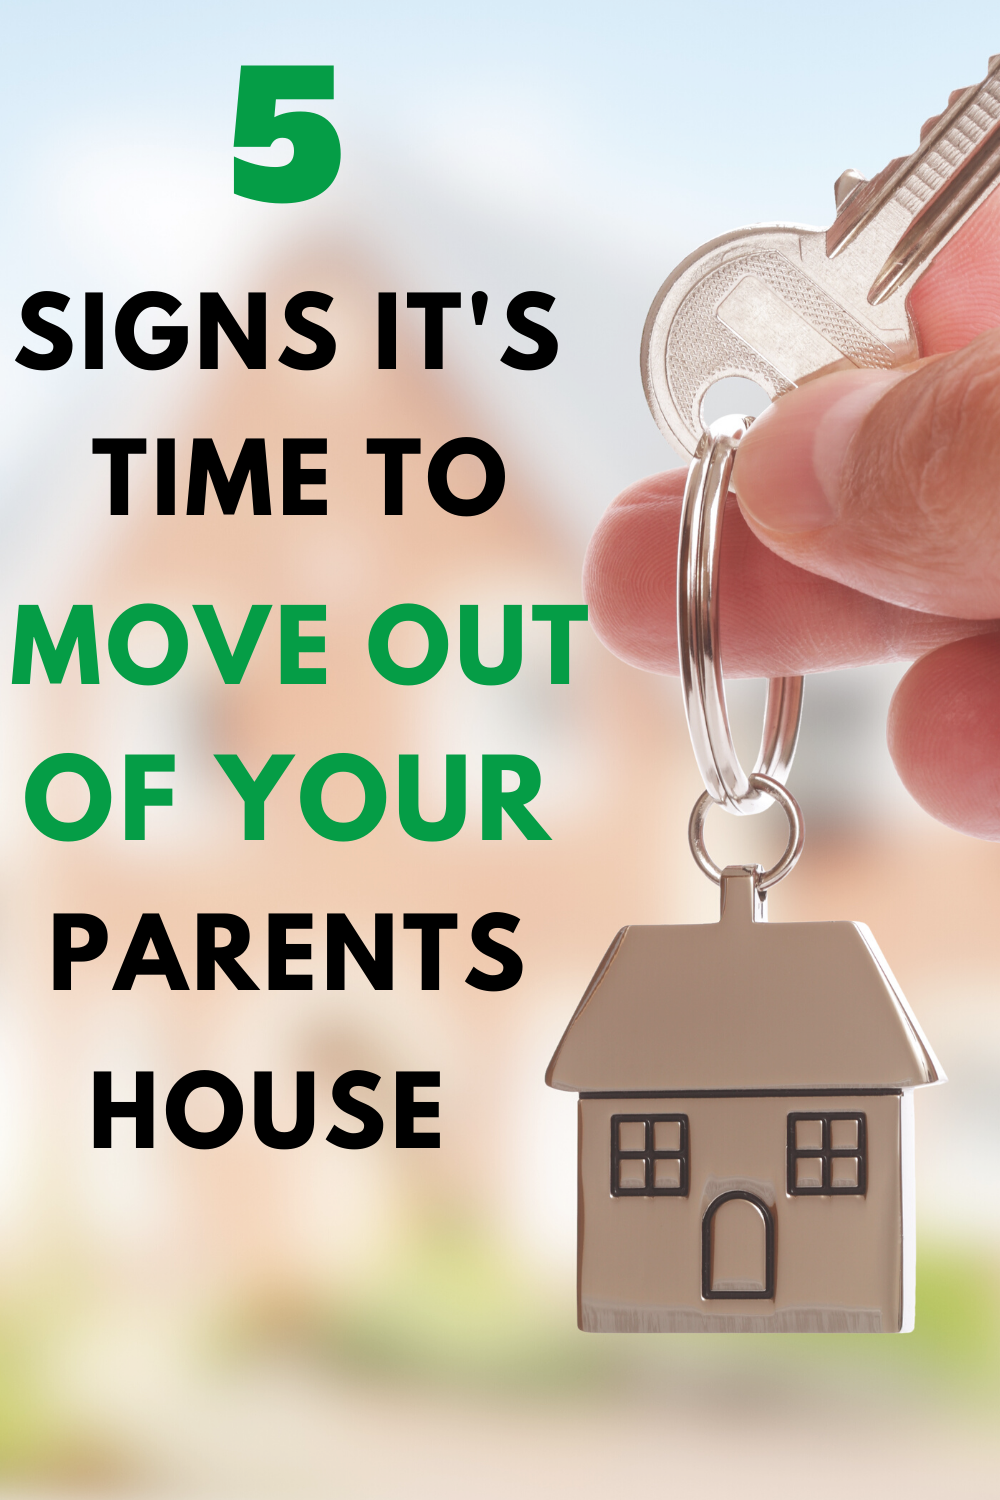 Signs It S Time To Move Out Of Your Parents House Live Life Millennials In 2020 Moving Out Tips For Moving Out First Time Moving Out